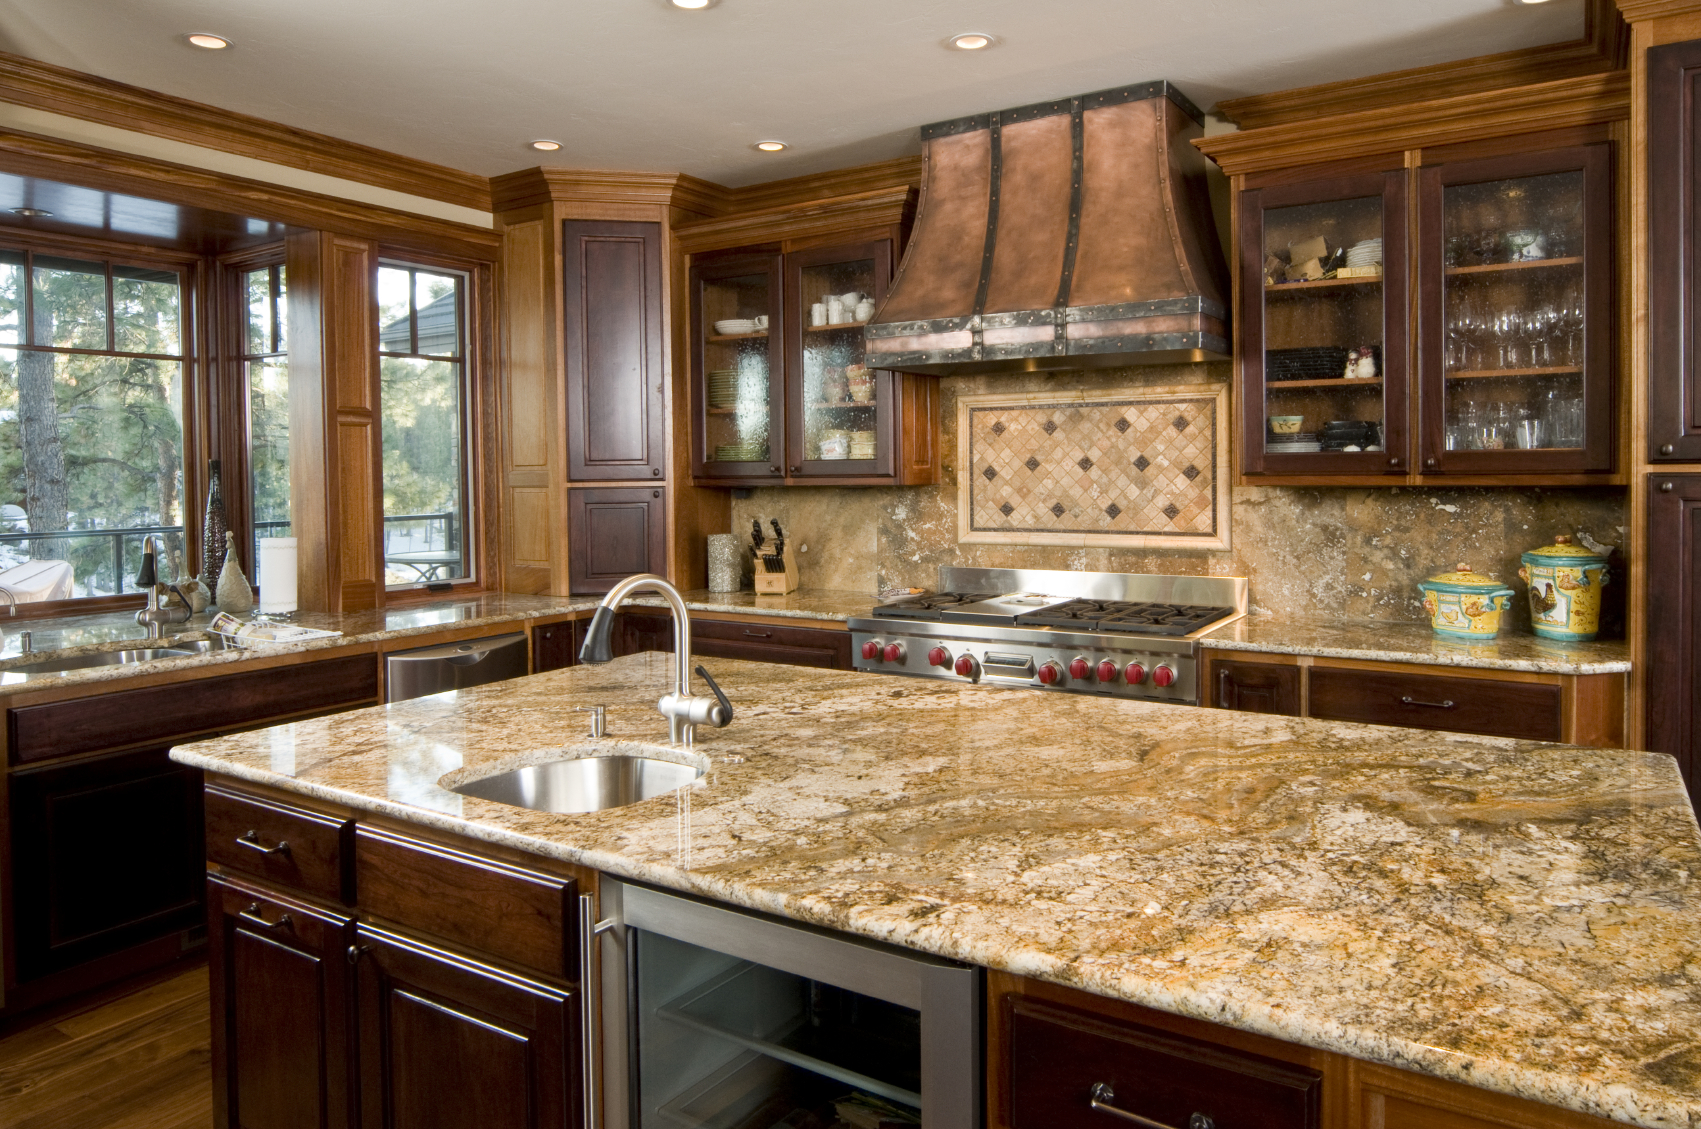 contemporary wood kitchens kitchen cabinet countertop Copper tones unify this kitchen featuring dark wood cupboard doors over lighter toned cabinetry with